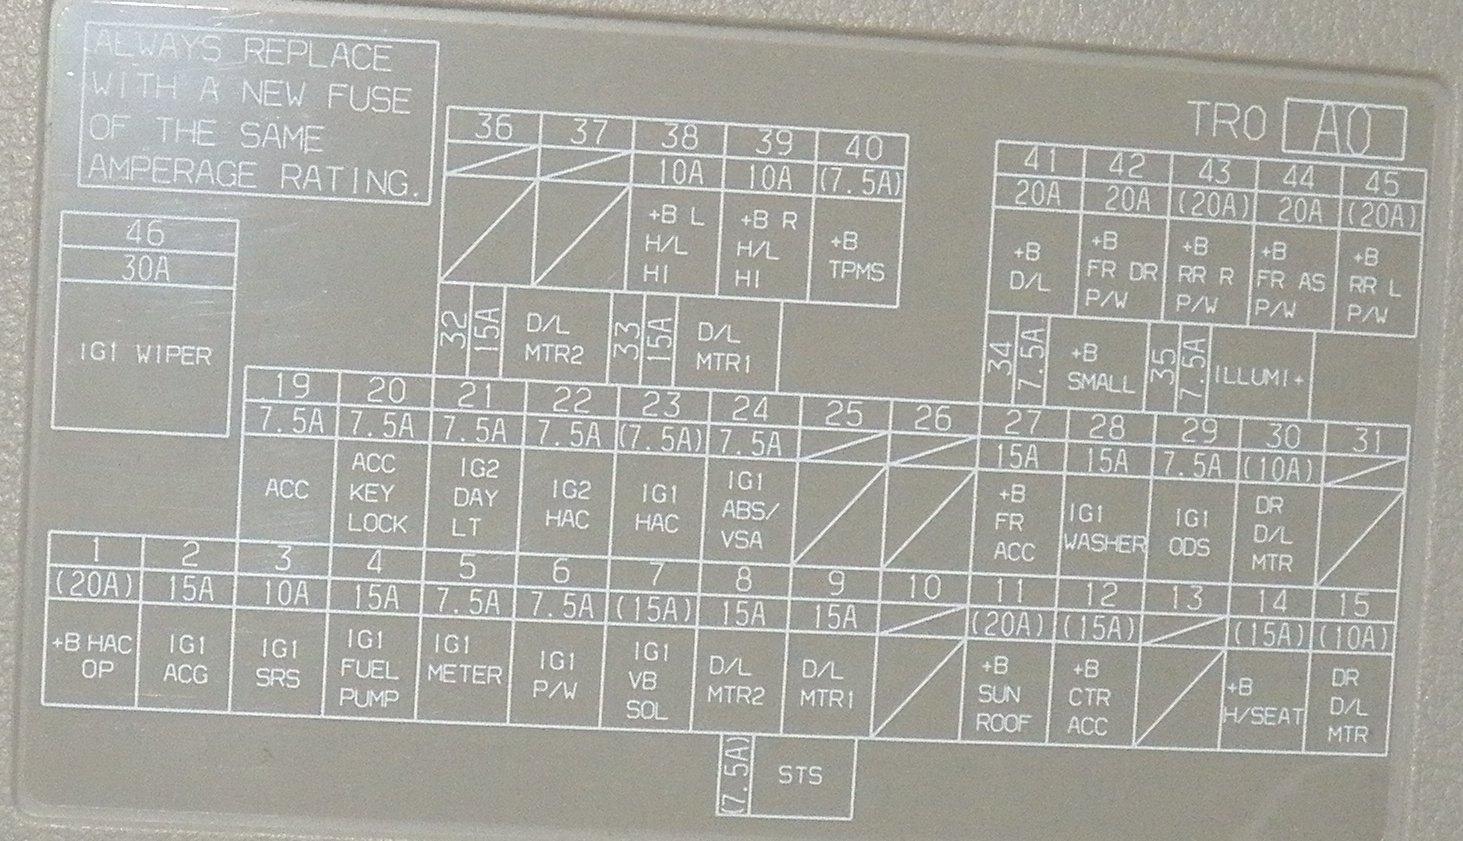 hight resolution of 2012 civic fuse diagram wiring diagrams terms 2012 civic si fuse box 2012 civic si fuse diagram